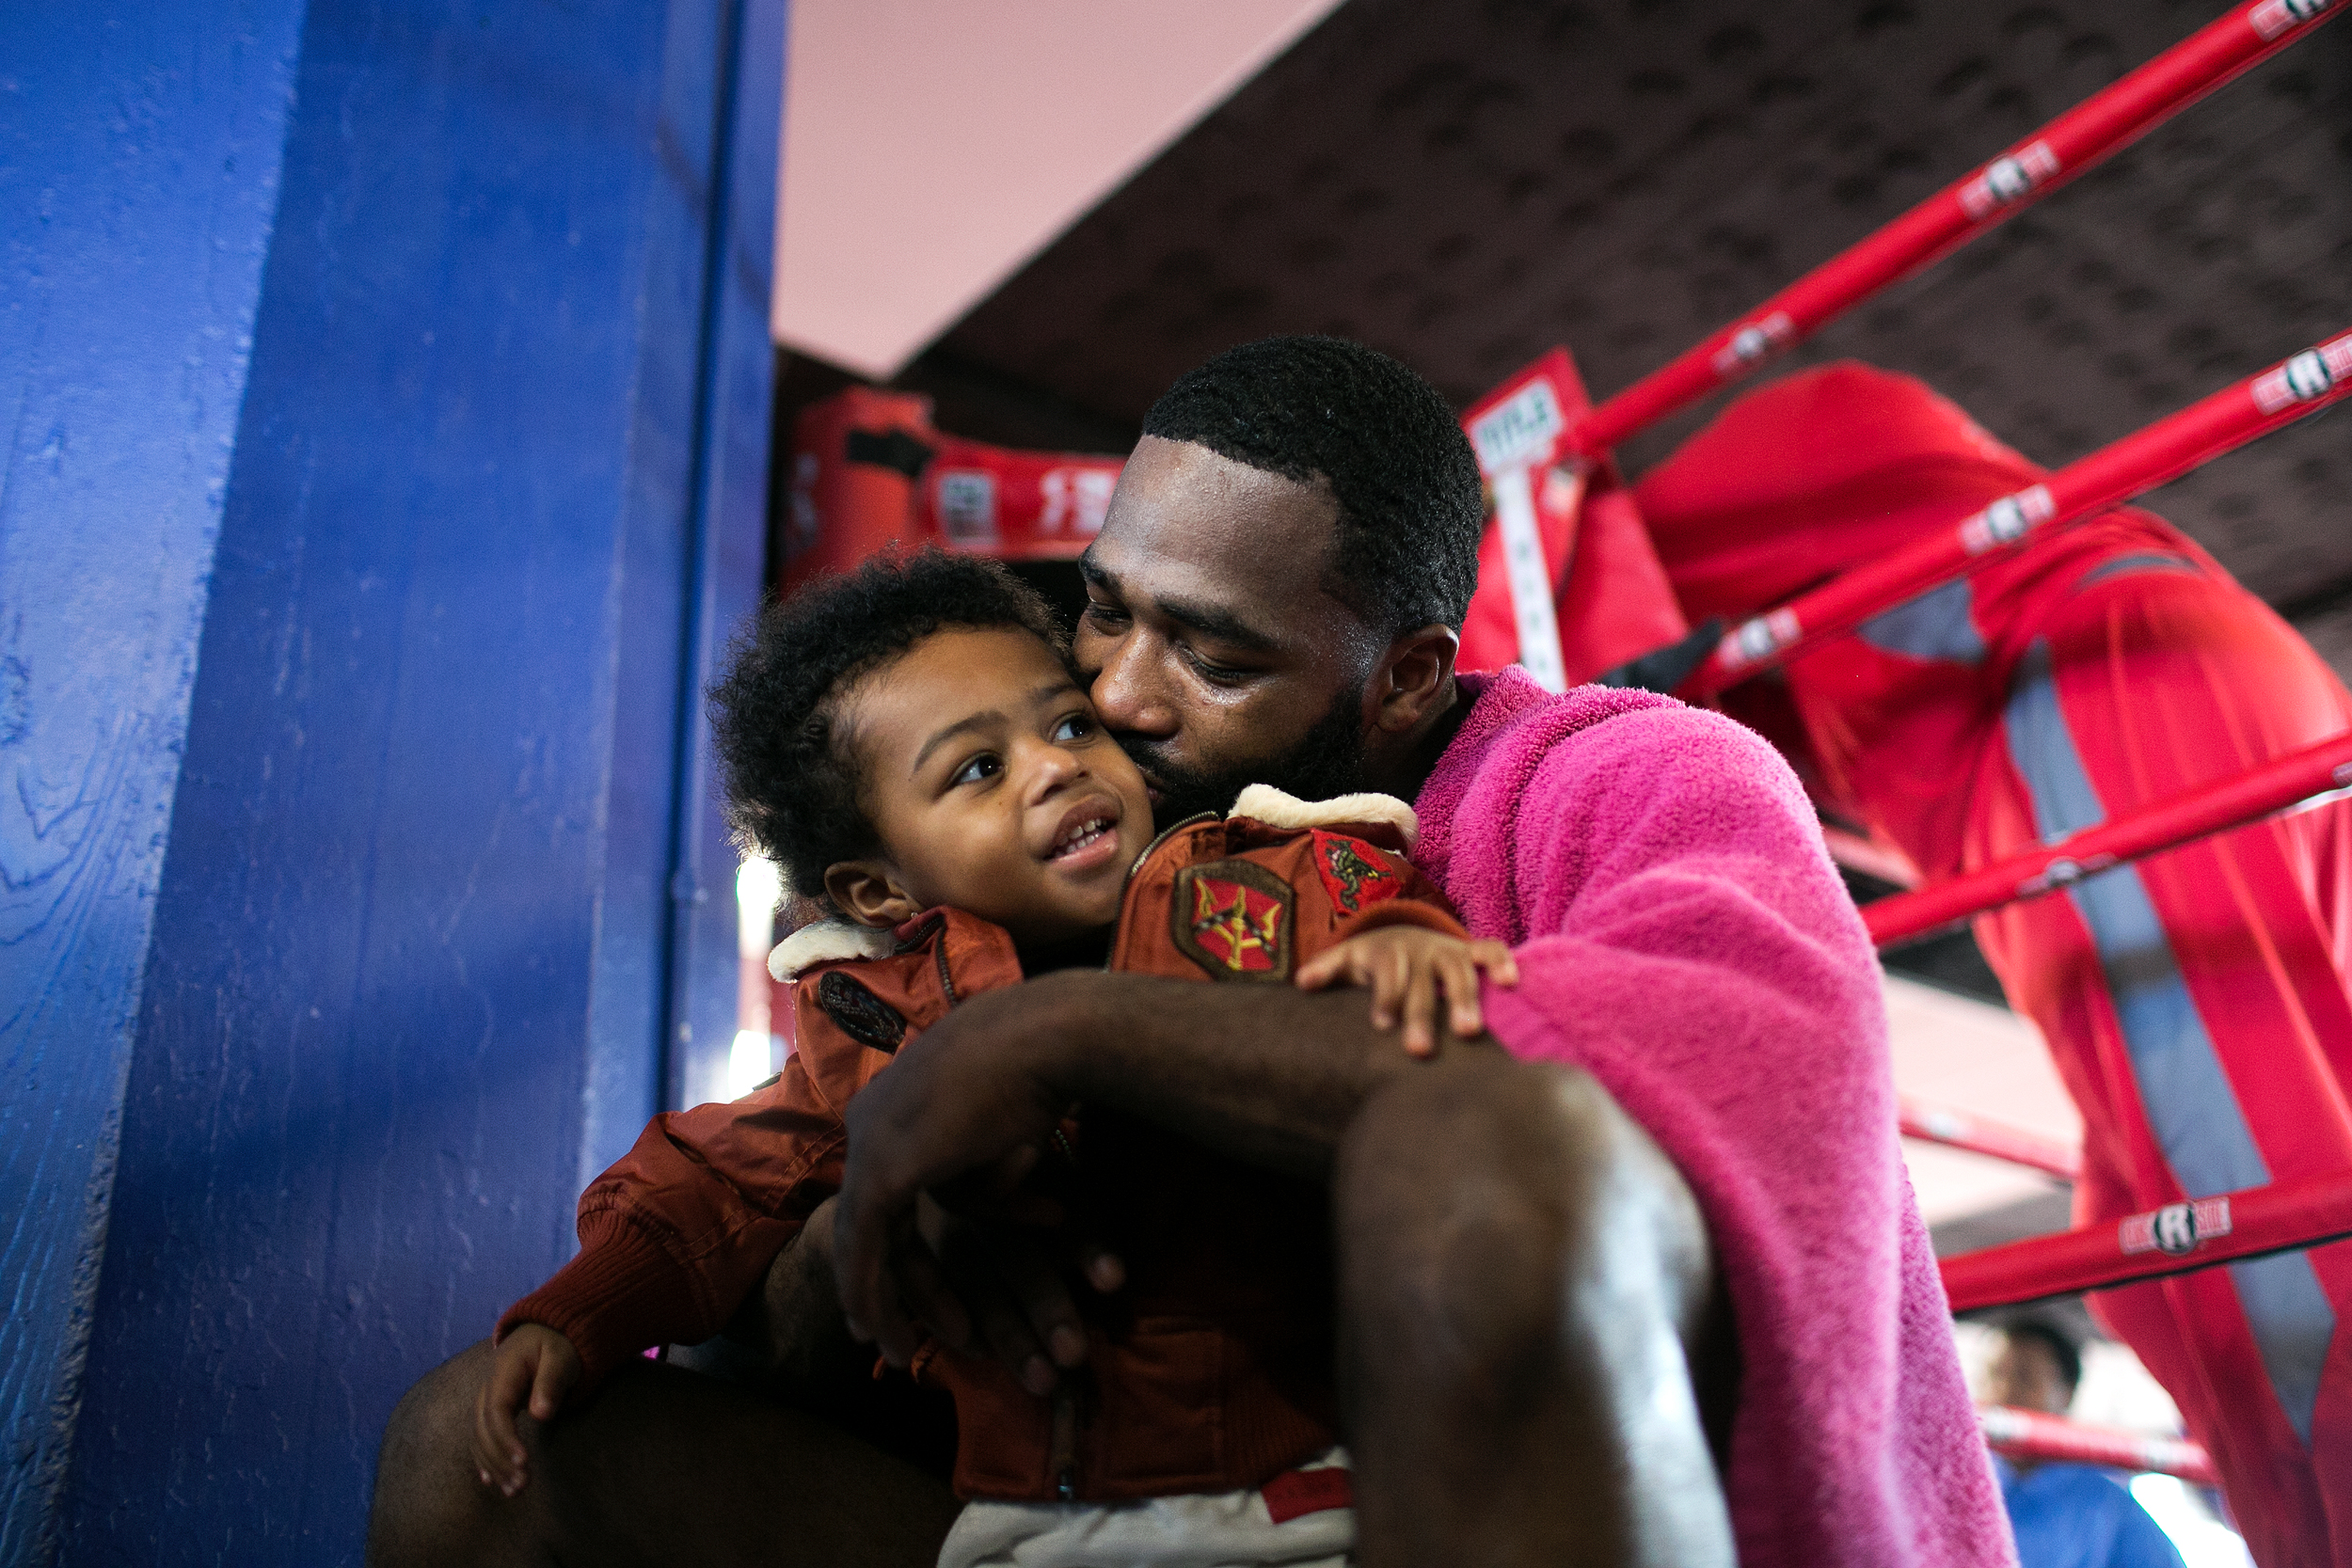 Adrien Broner holds his son on his second birthday after practicing at his gym, the Oasis Elite Boxing gym in Cincinnati, OH, on February 15, 2017.